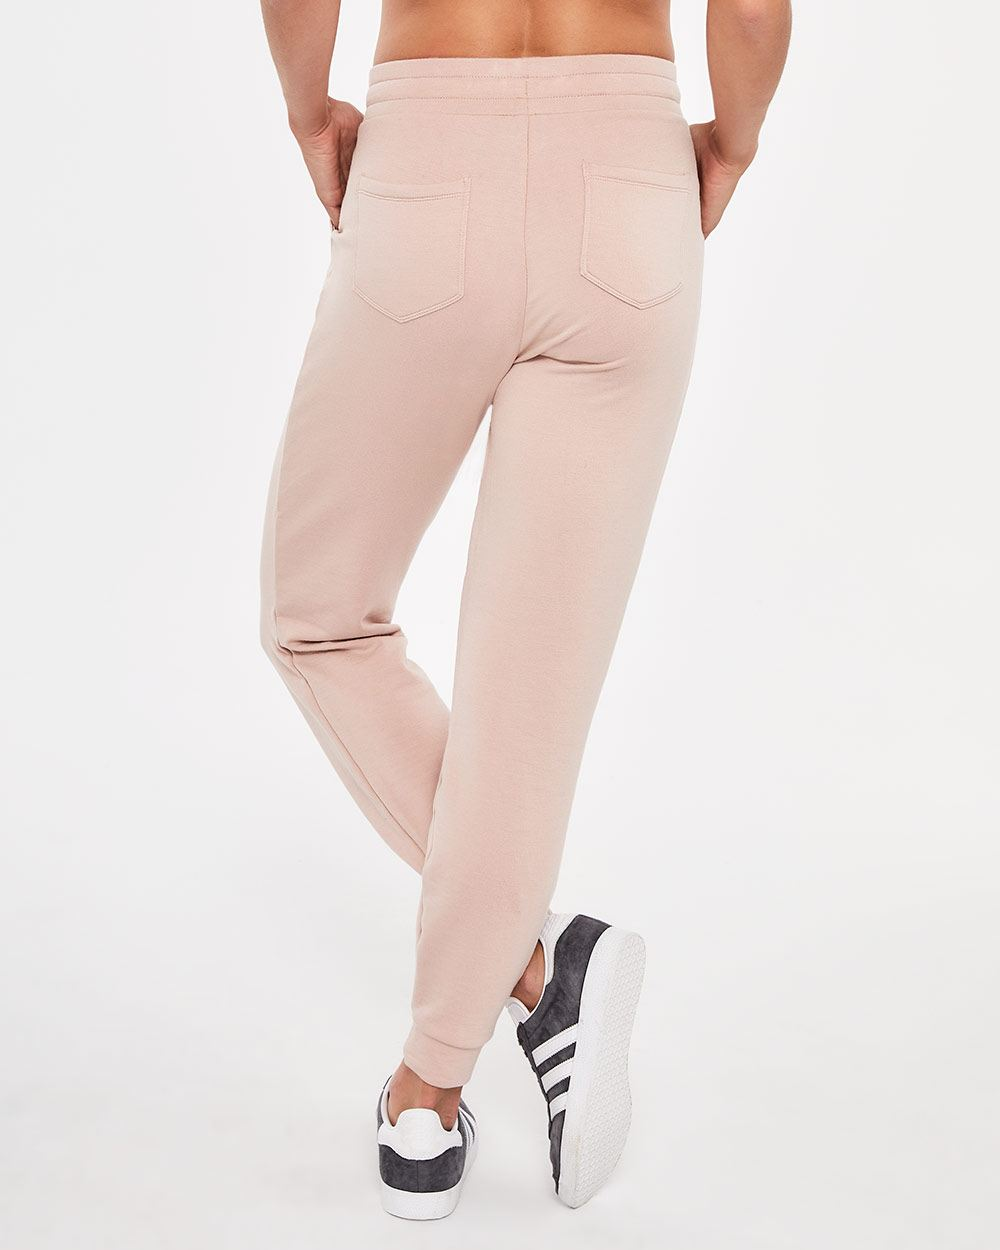 Hyba Joggers with Ribbon at Waist